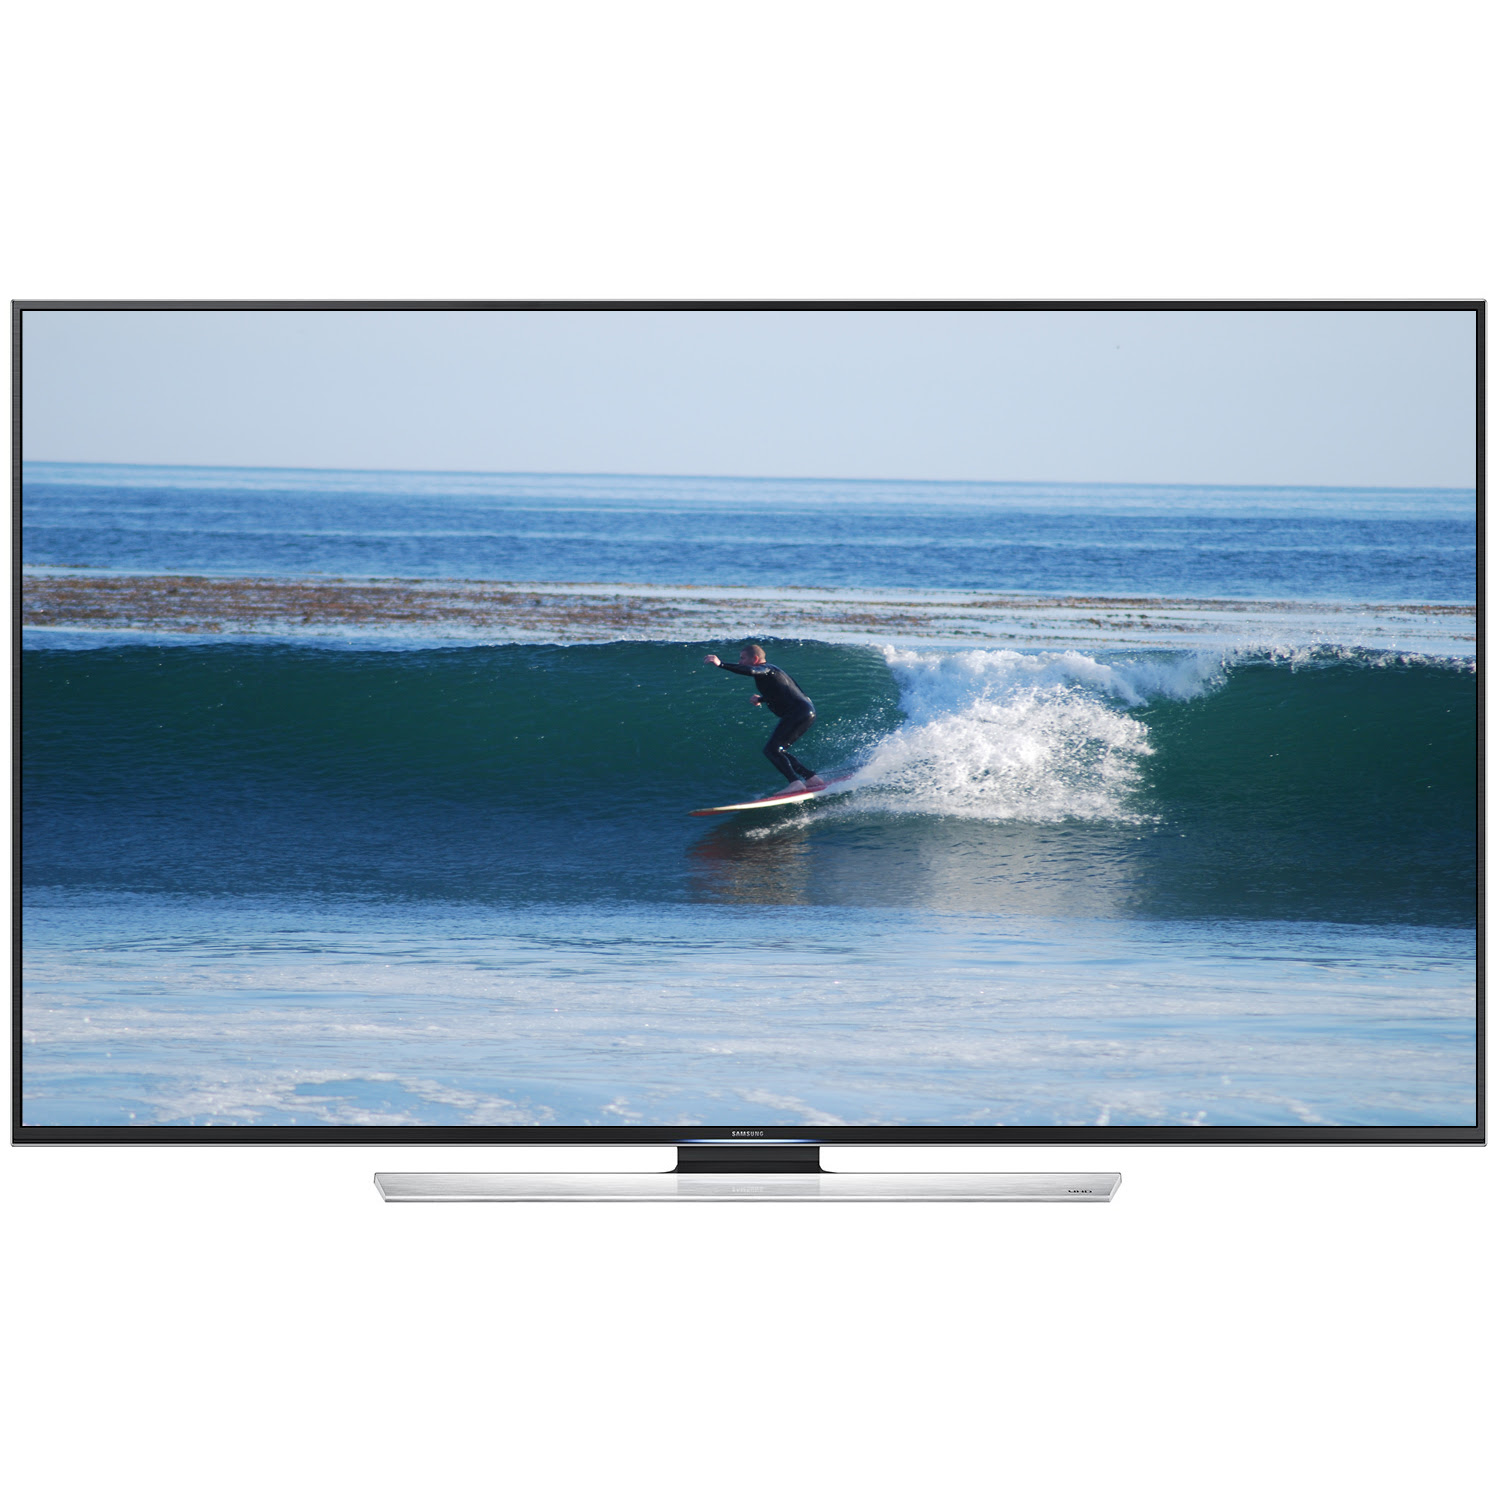 Samsung Refurbished 65 Class 4K Ultra HD 3D LED Smart Hdtv - UN65HU8500